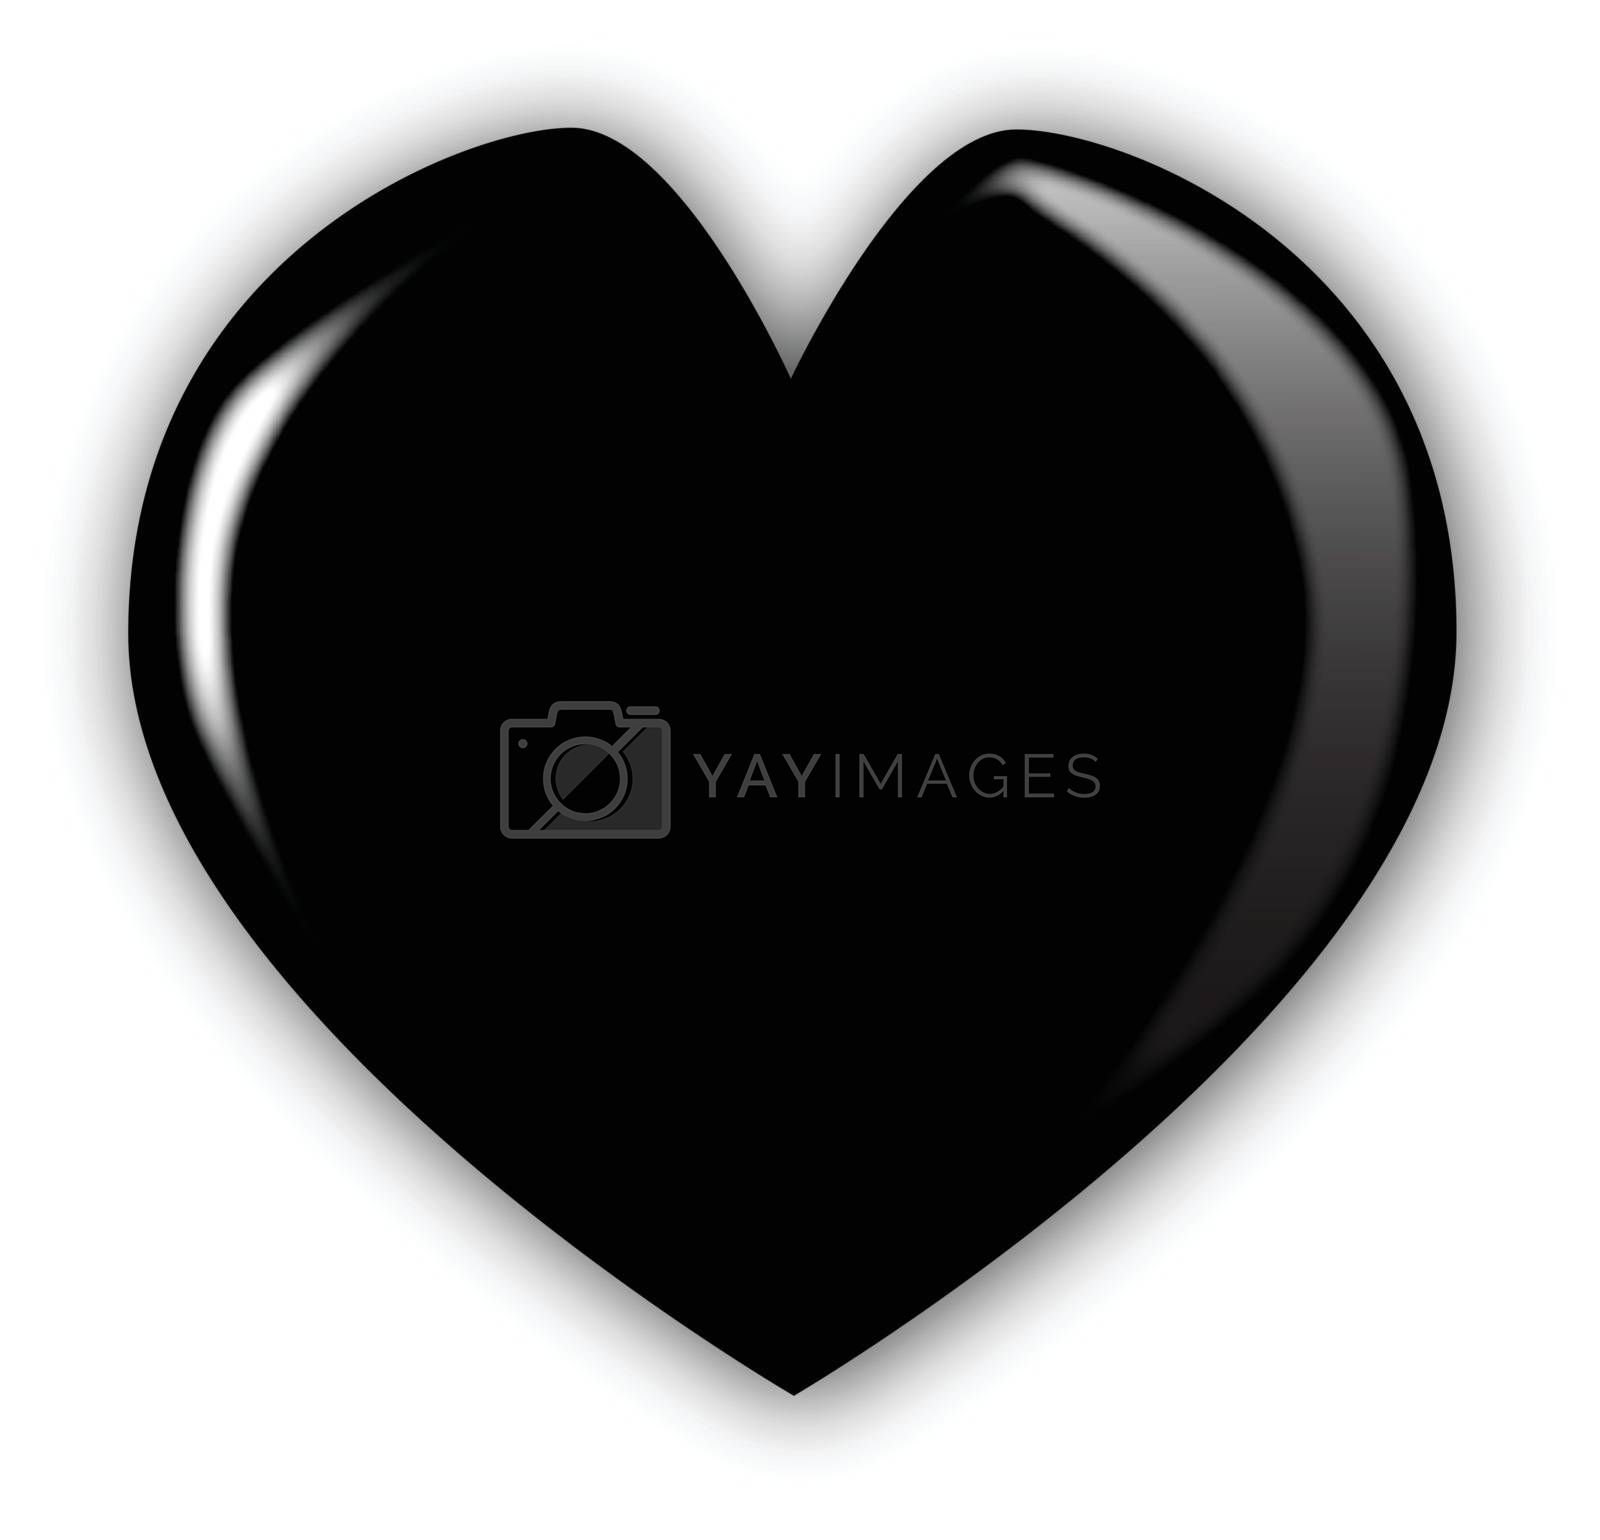 A black heart isolated over a white background